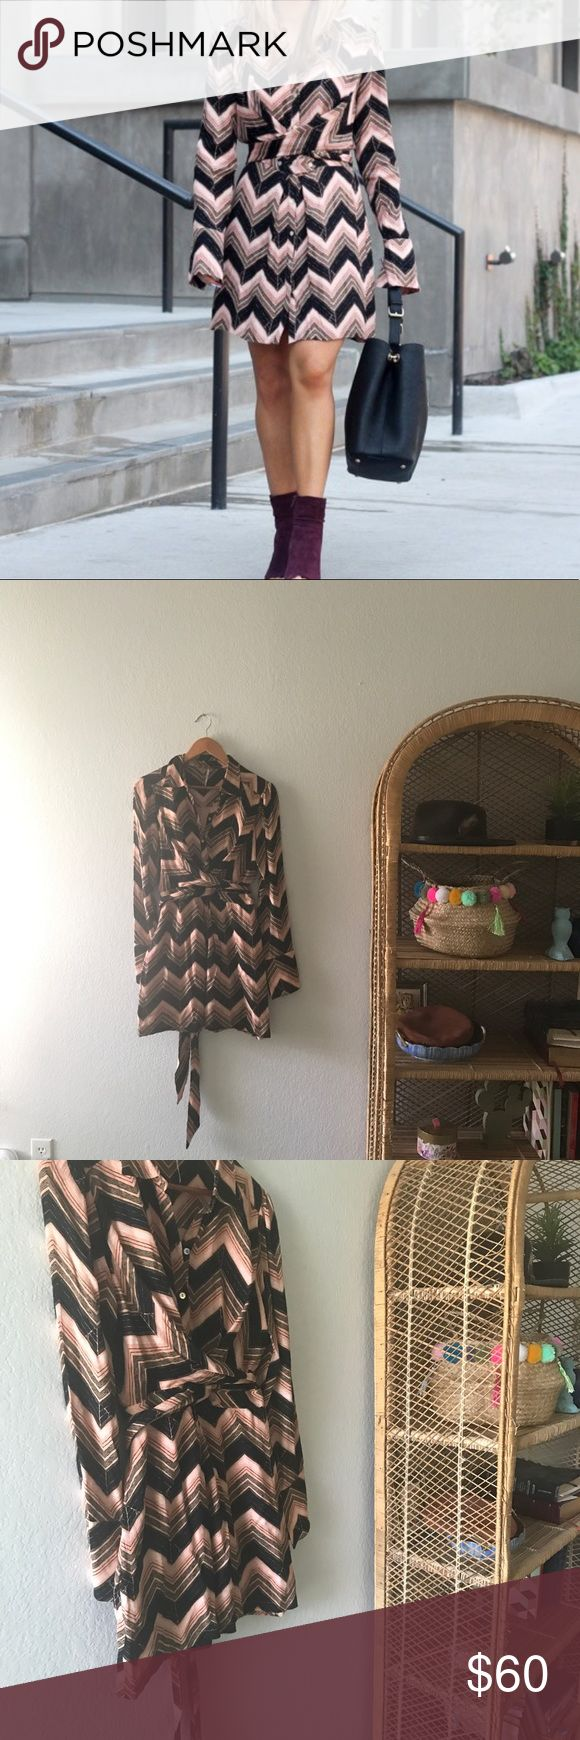 Free People Alistair Chevron shirt dress size sm Great Free People chevron shirt dress. Very 70's inspired. It has a great wrap tie, cross detail in the front. Only worn 2 times... Free People Dresses